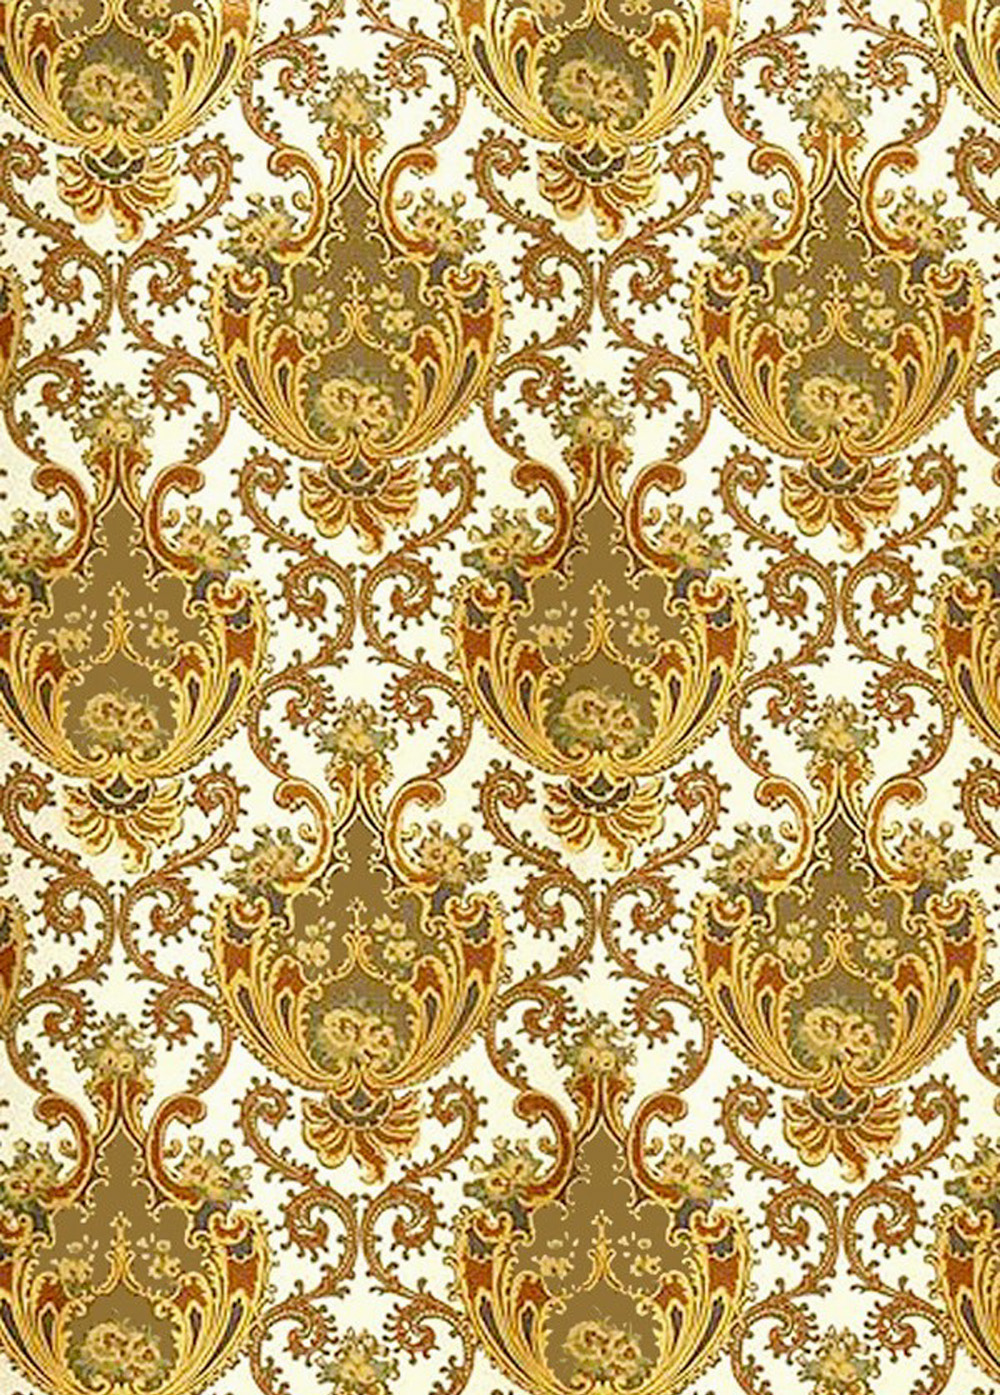 Free Download Victorian Wallpapers Wallpaper Borders